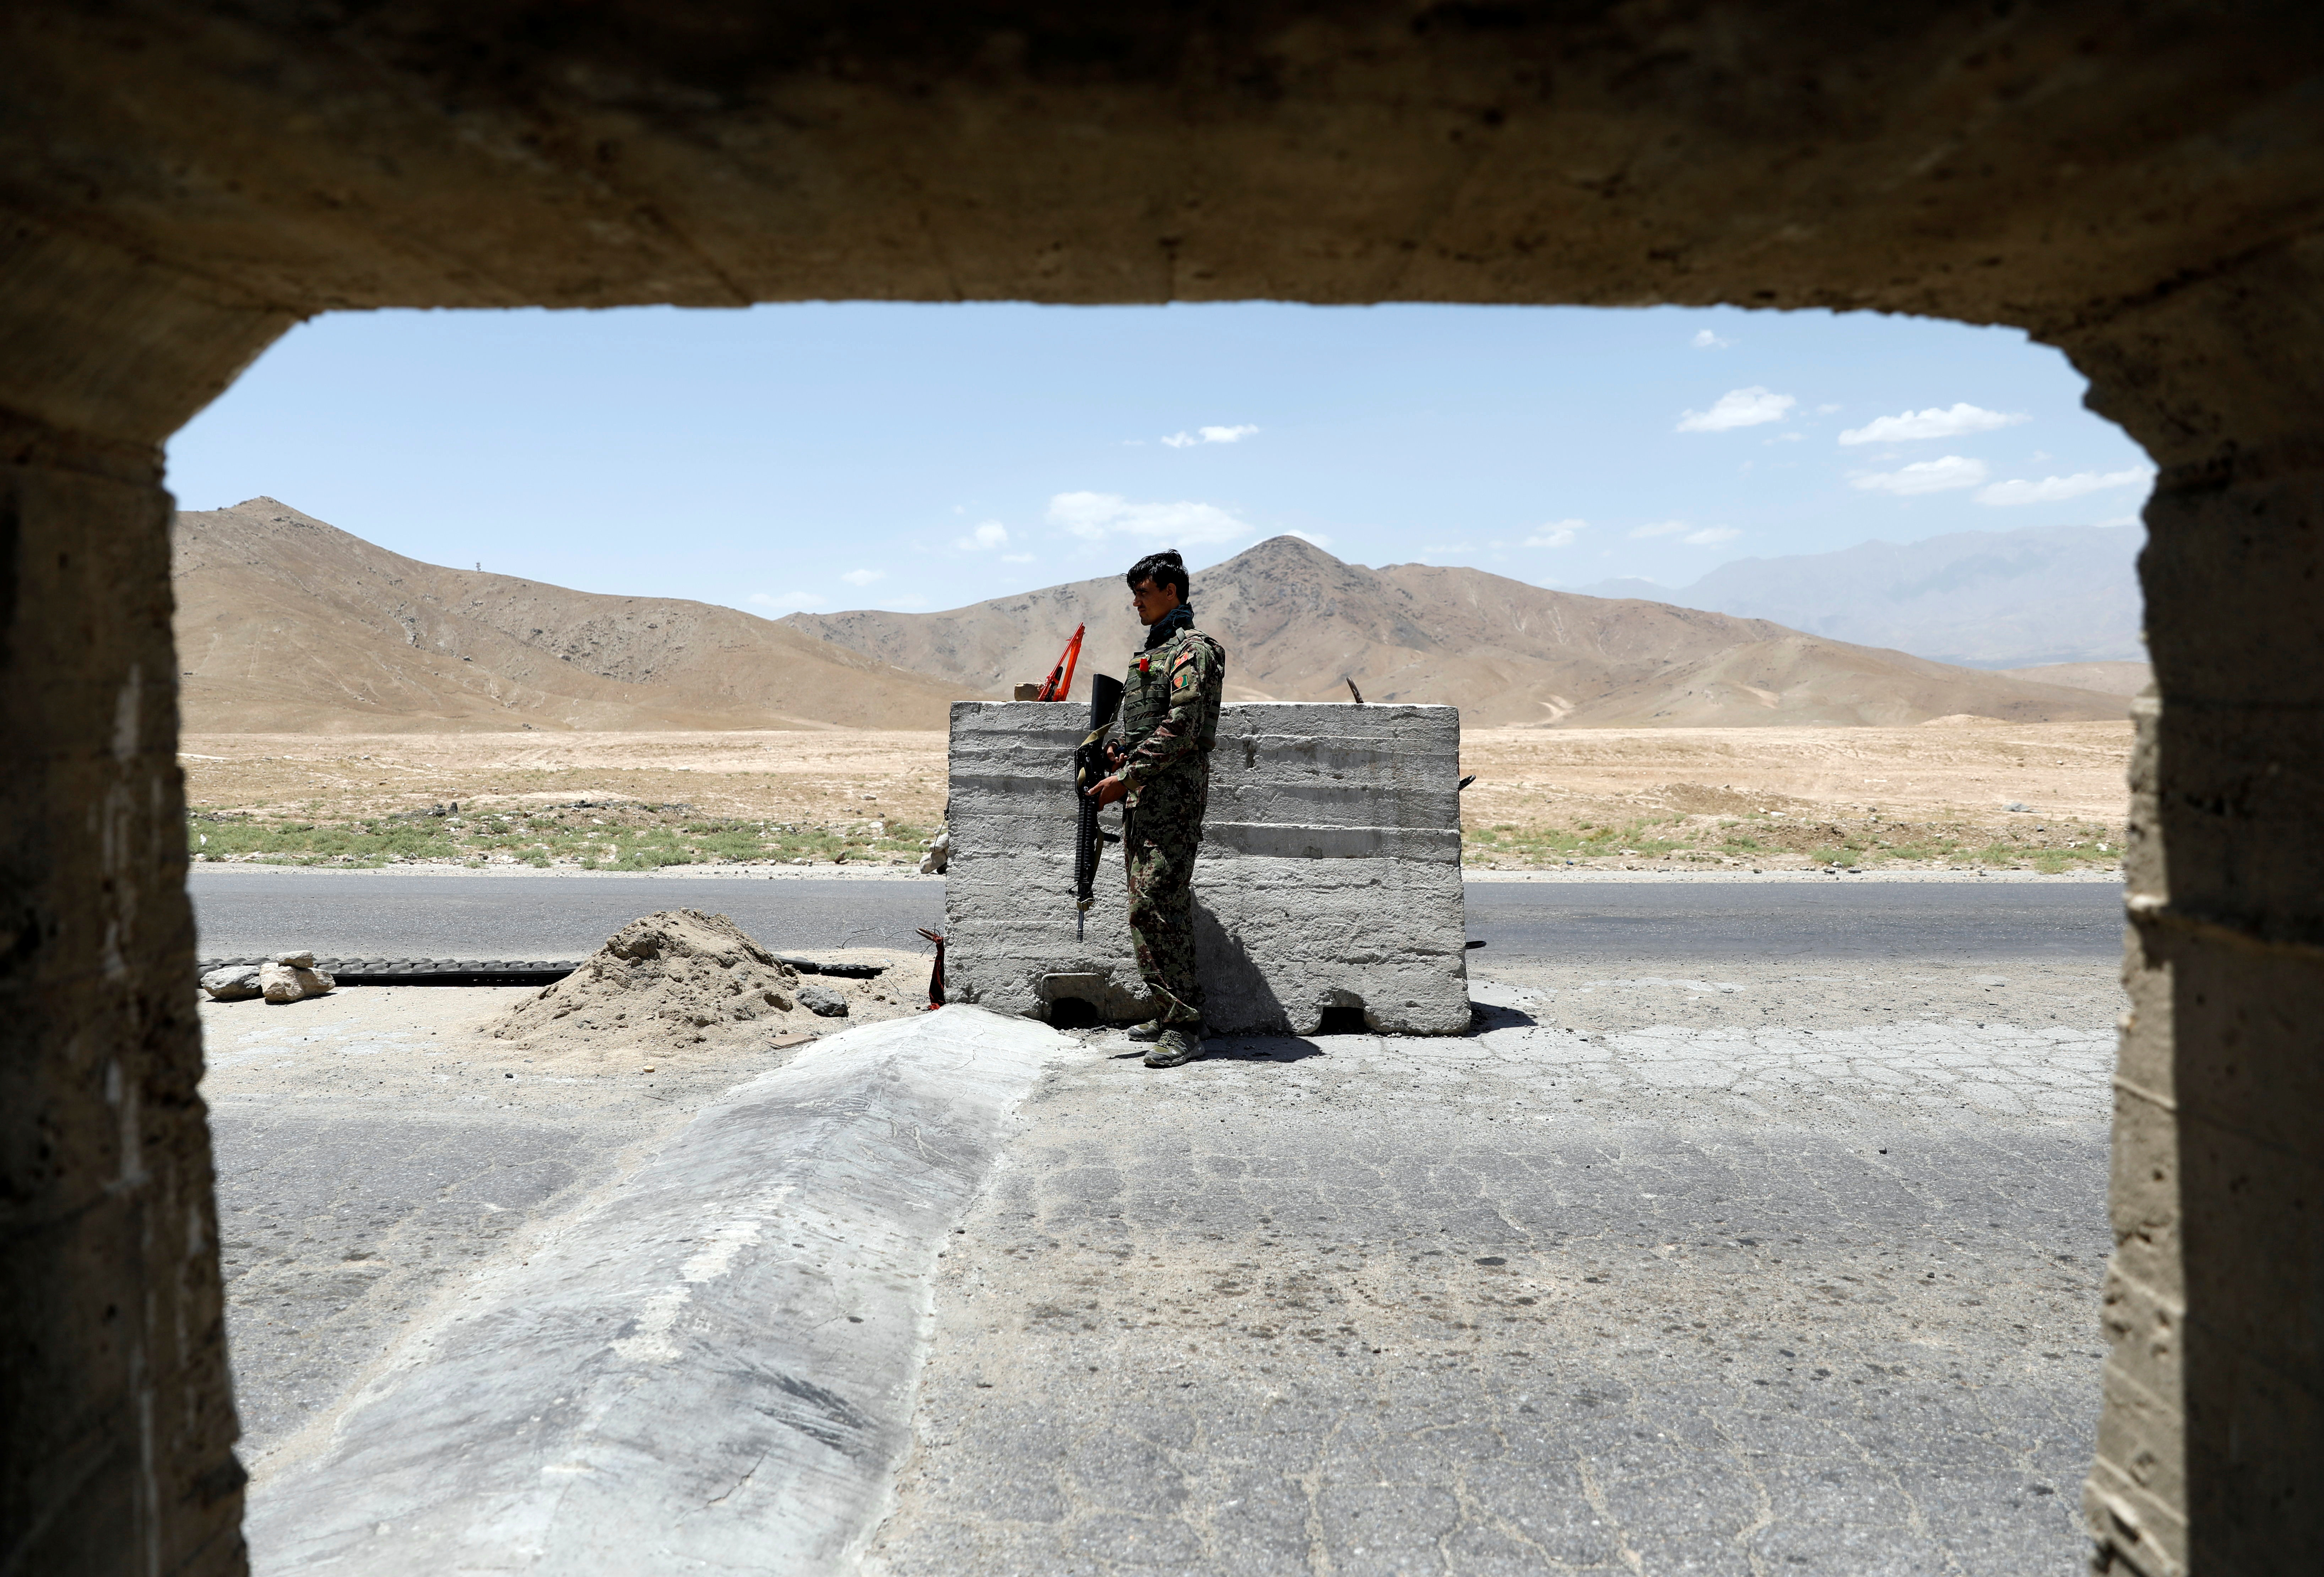 An Afghan National Army soldier stands guard at a check post near Bagram U.S. air base, on the day the last of American troops vacated it, Parwan province, Afghanistan July 2, 2021. REUTERS/Mohammad Ismail